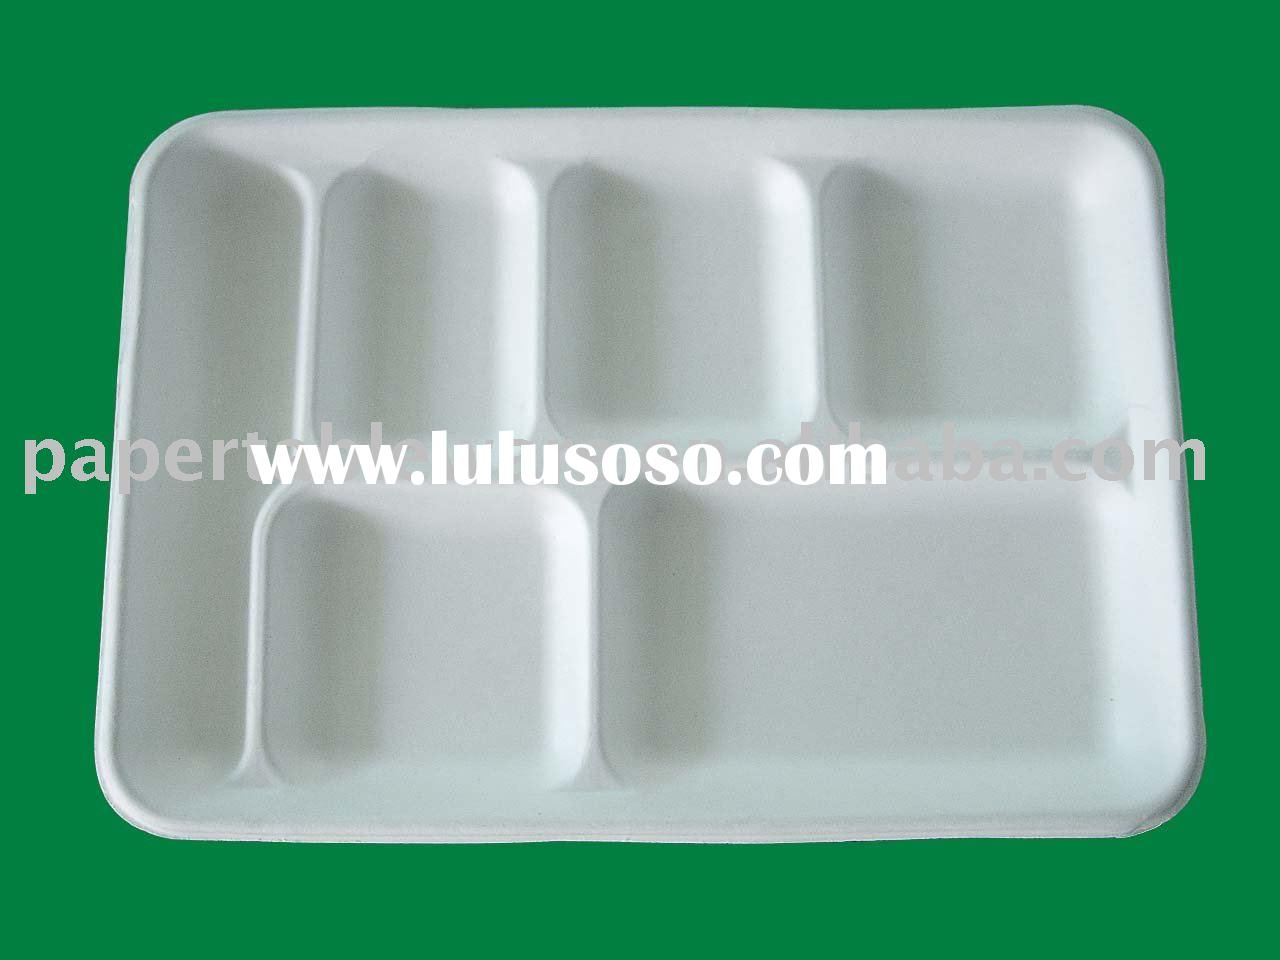 eco-friendly 7-compartment tray,disposable airline food packaging